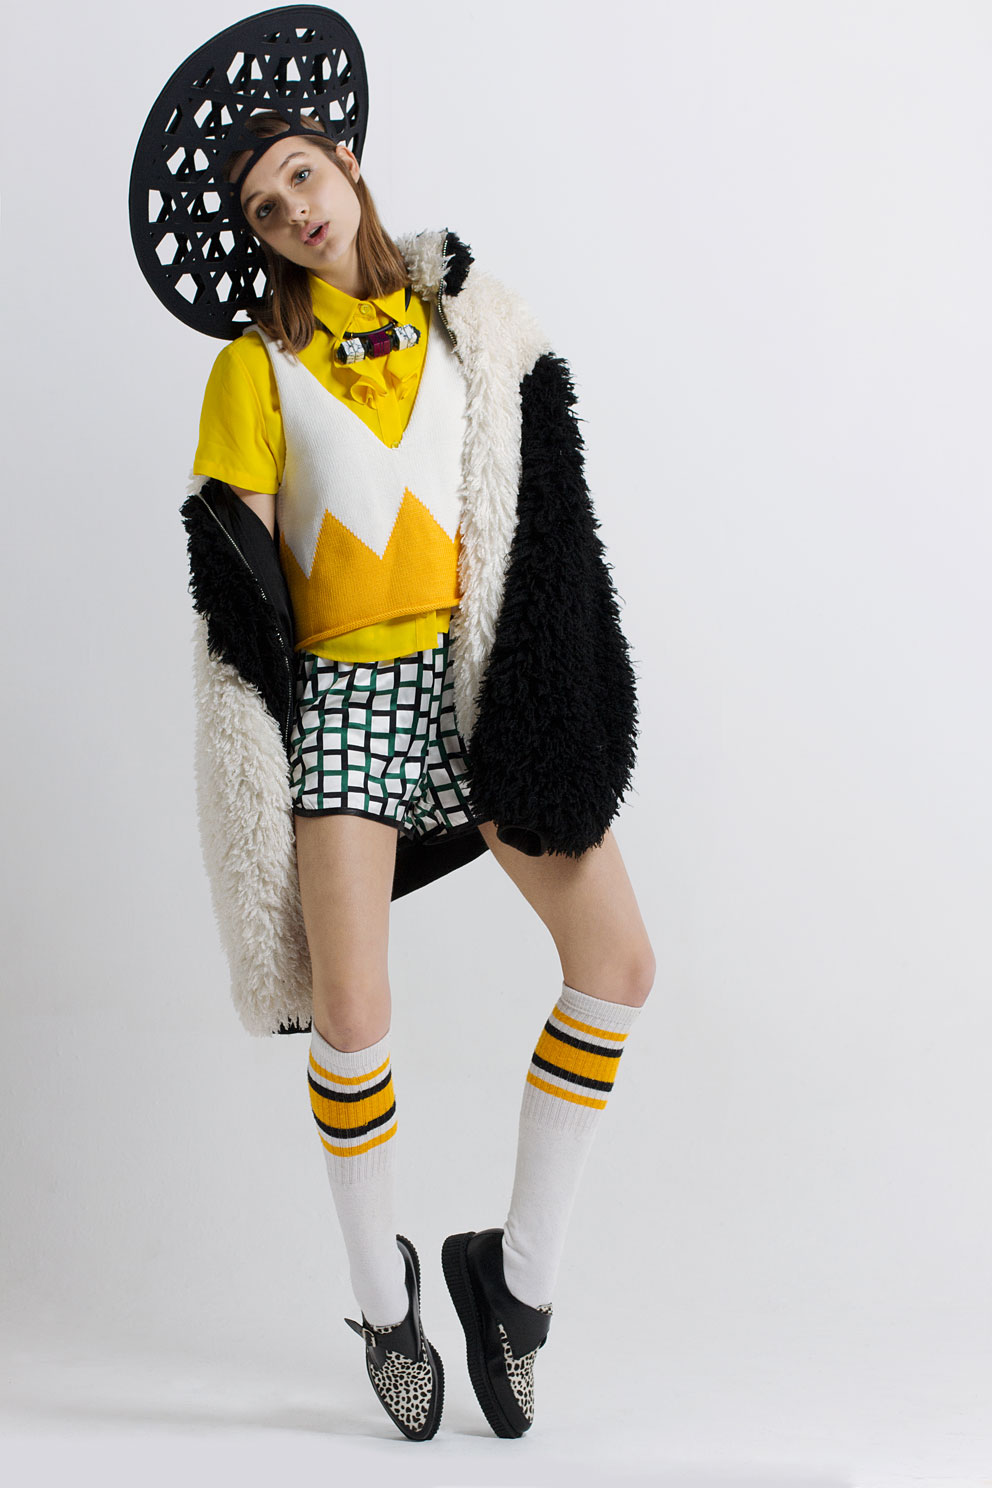 Yellow shirt by Peter Jensen, white & yellow knitwear sleeveless top by Cats Brothers, shorts by Cat Brothers, jacket by Hardware London, necklace by Lily Kamper, shoes by Underground England, hat by Awon Goldin